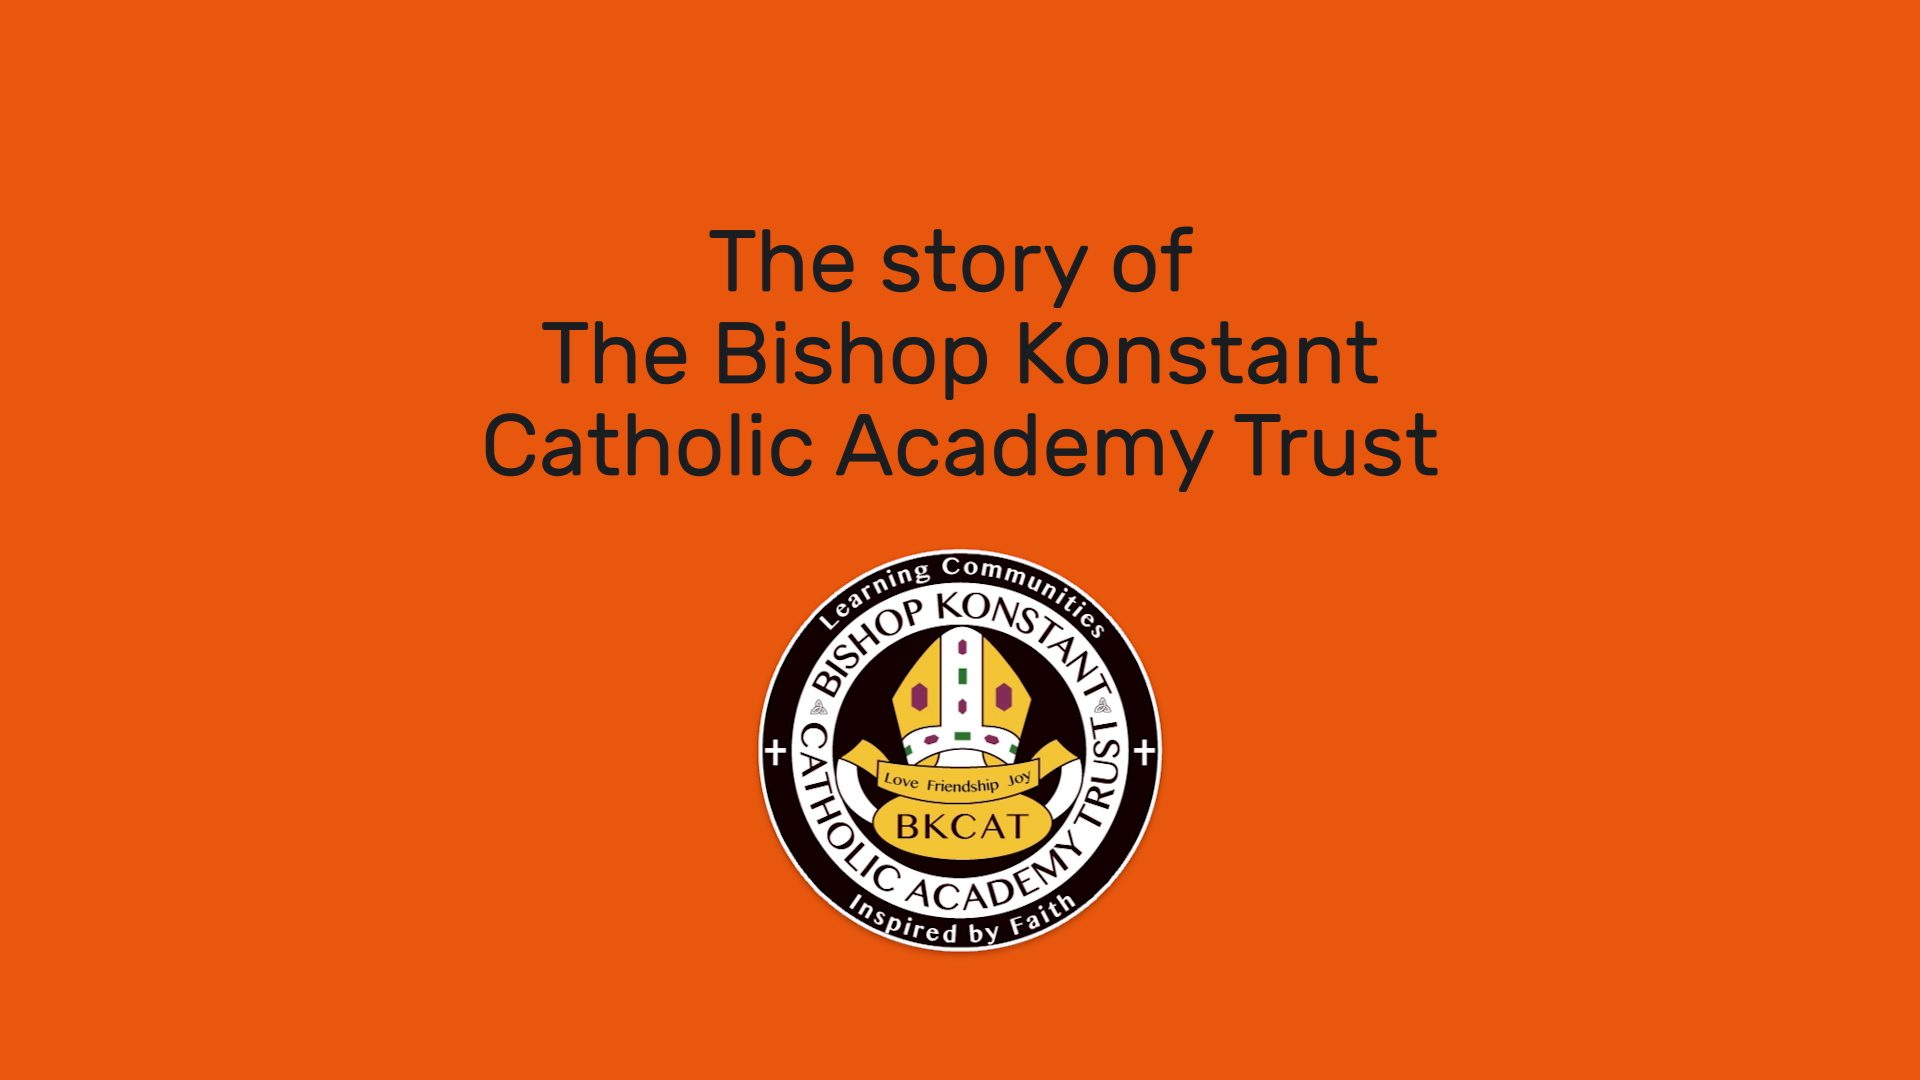 The Story of The Bishop Konstan Catholic Academy Trust